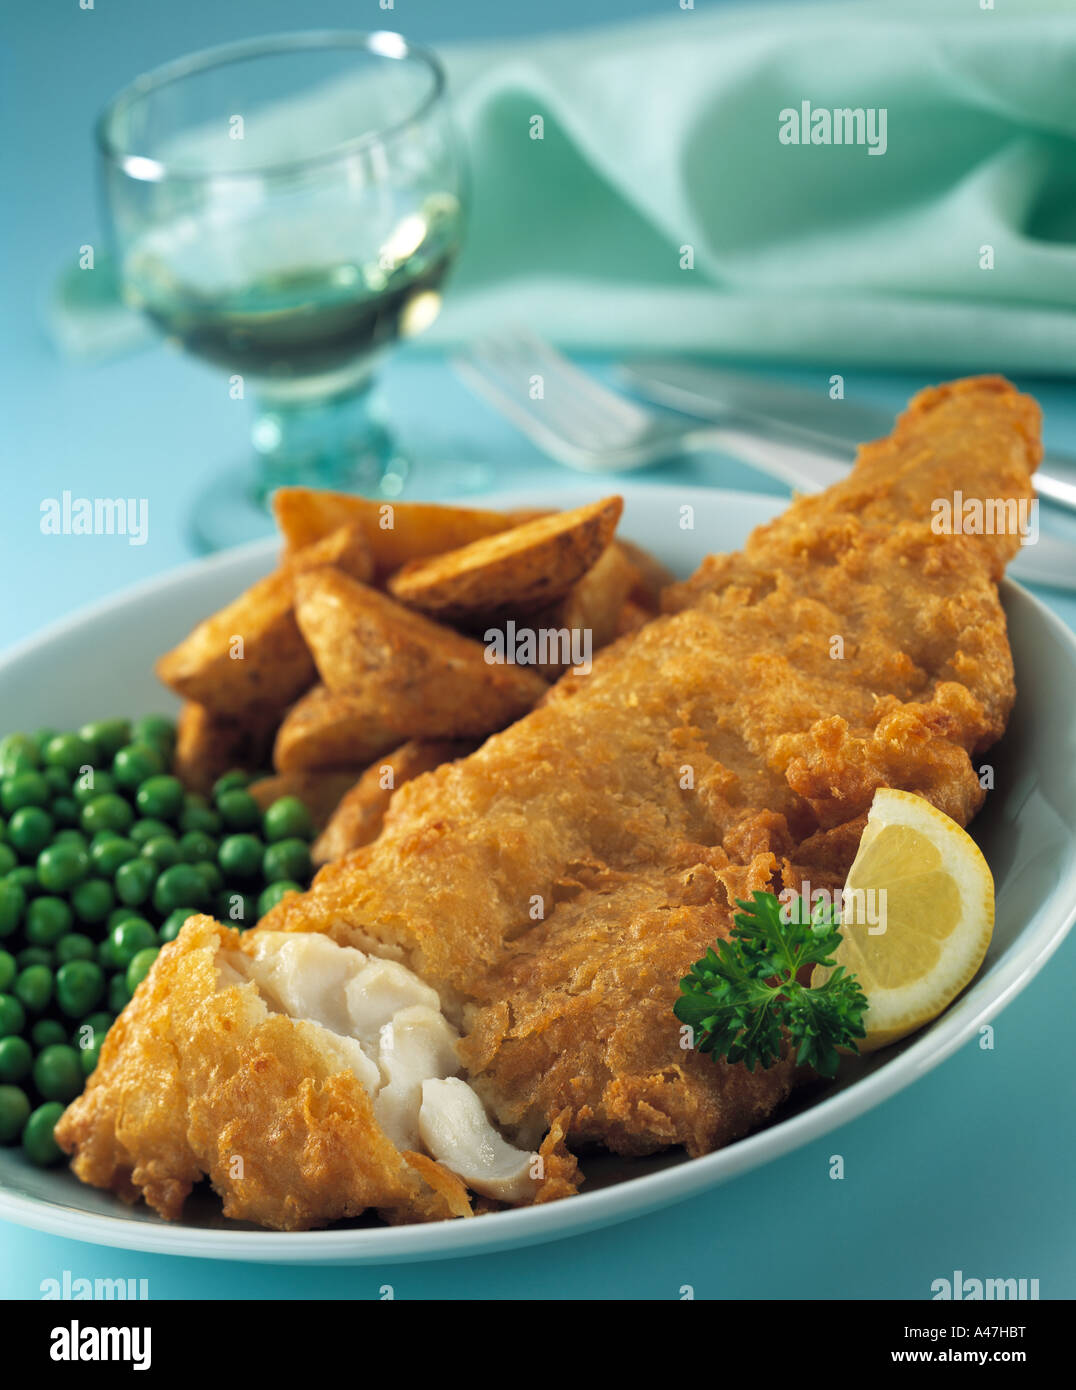 Fish and chips editorial food - Stock Image